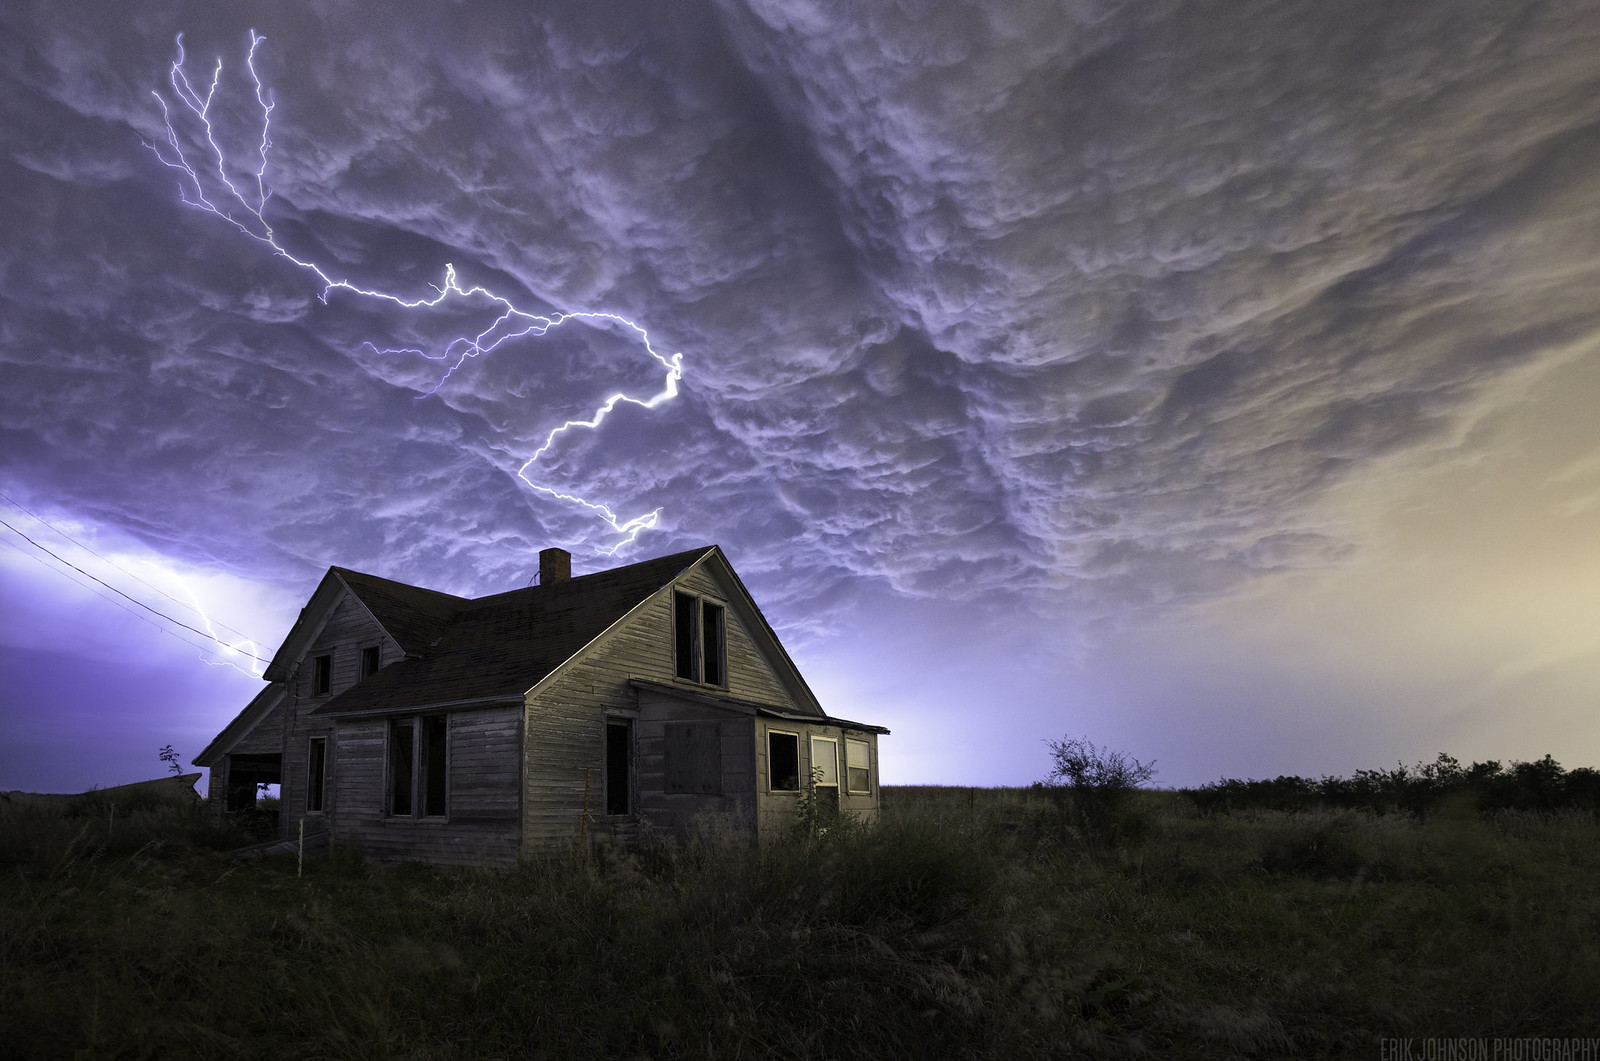 Interesting Photo of the Day: Lightning Over an Abandoned House